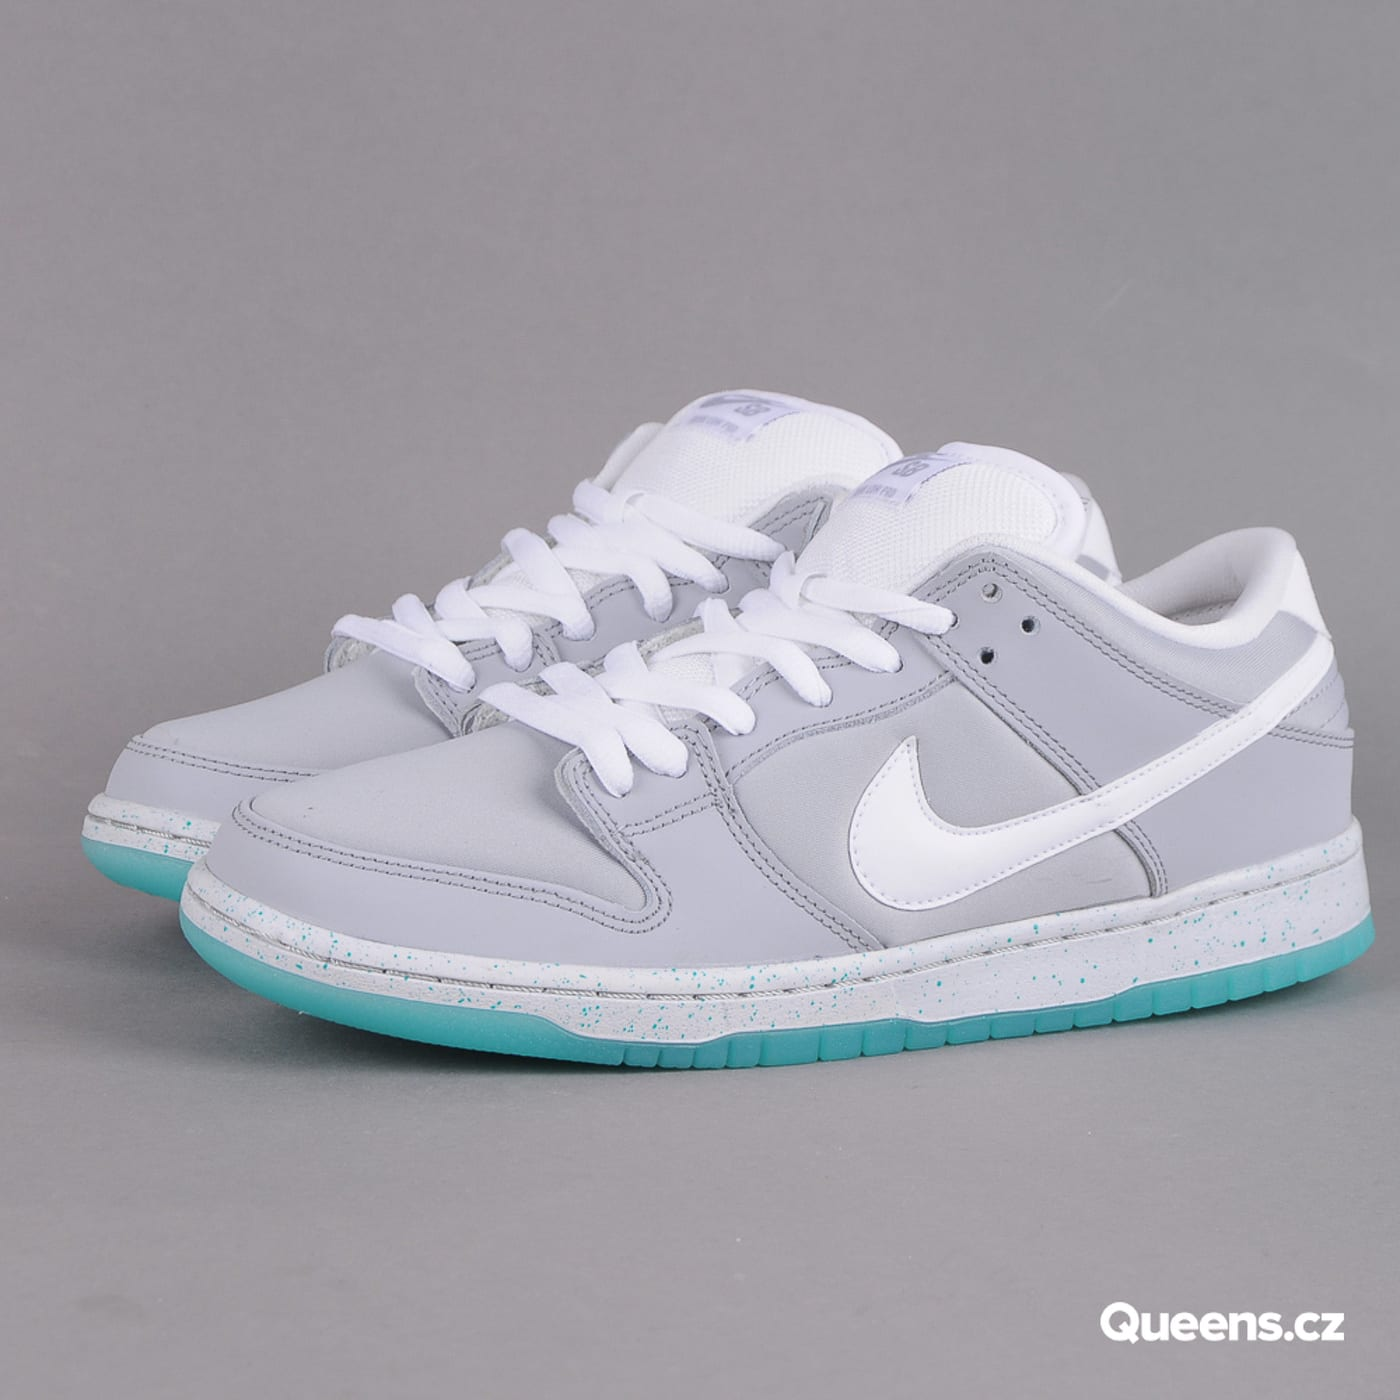 separation shoes 05b16 57af9 Nike Nike Dunk Low Premium SB